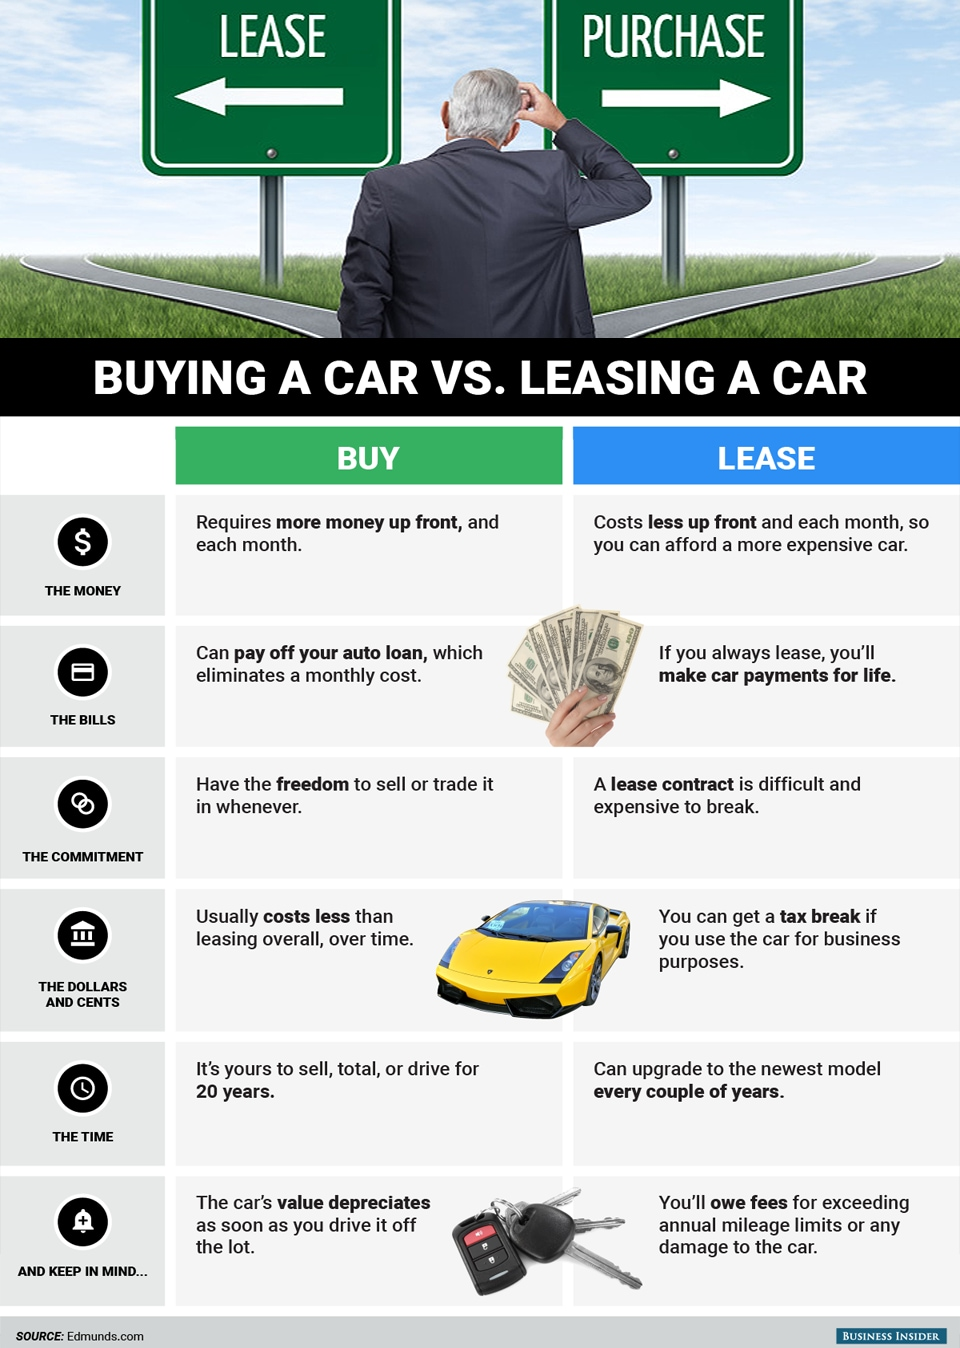 Learn More About Buying vs. Leasing Before Coming into Oak Harbor Motors